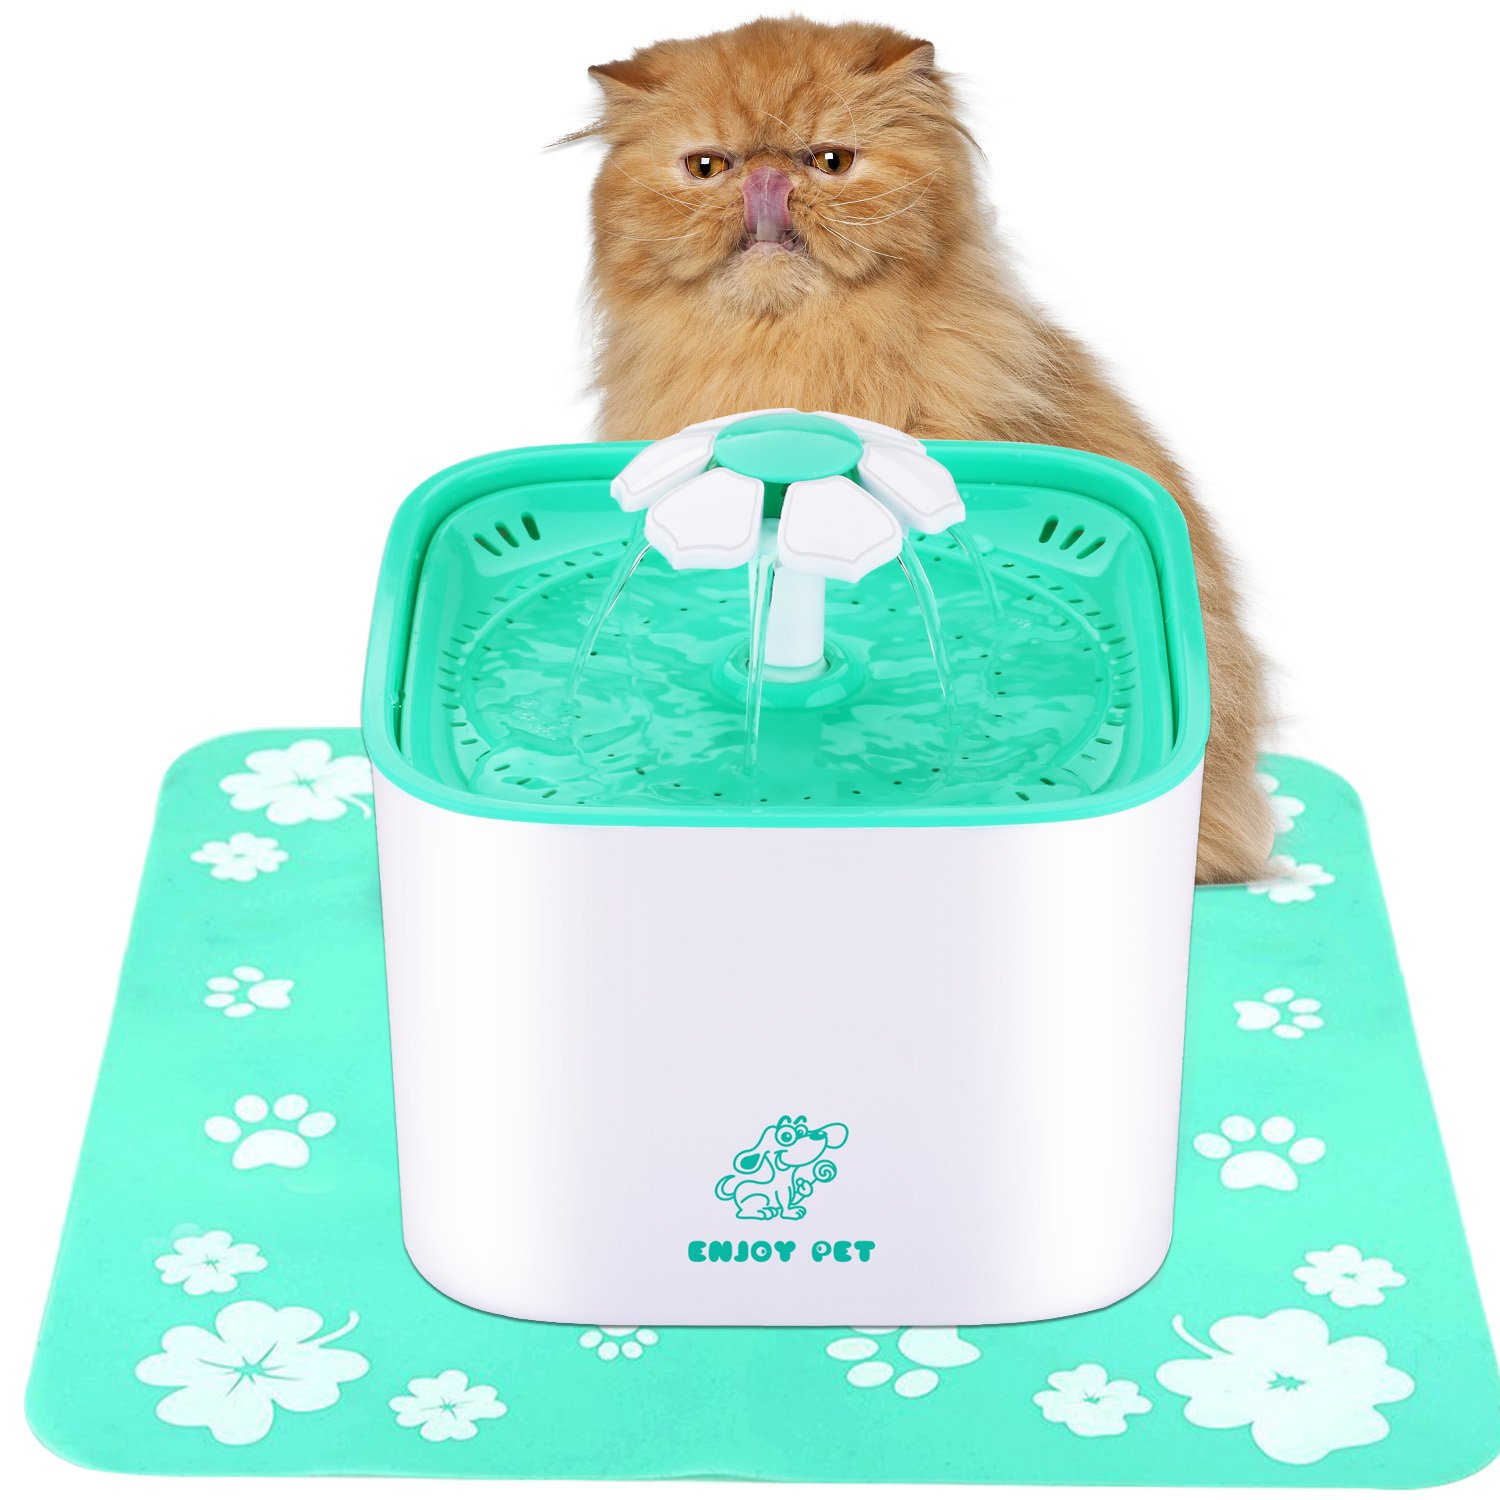 ENJOY PET Water Fountain for Cat and Dog 2L Automatic Cat Water Dispenser with Filter and Silicone Anti-skid Mat, Dog and Cat Fountain with Quiet Water Pump